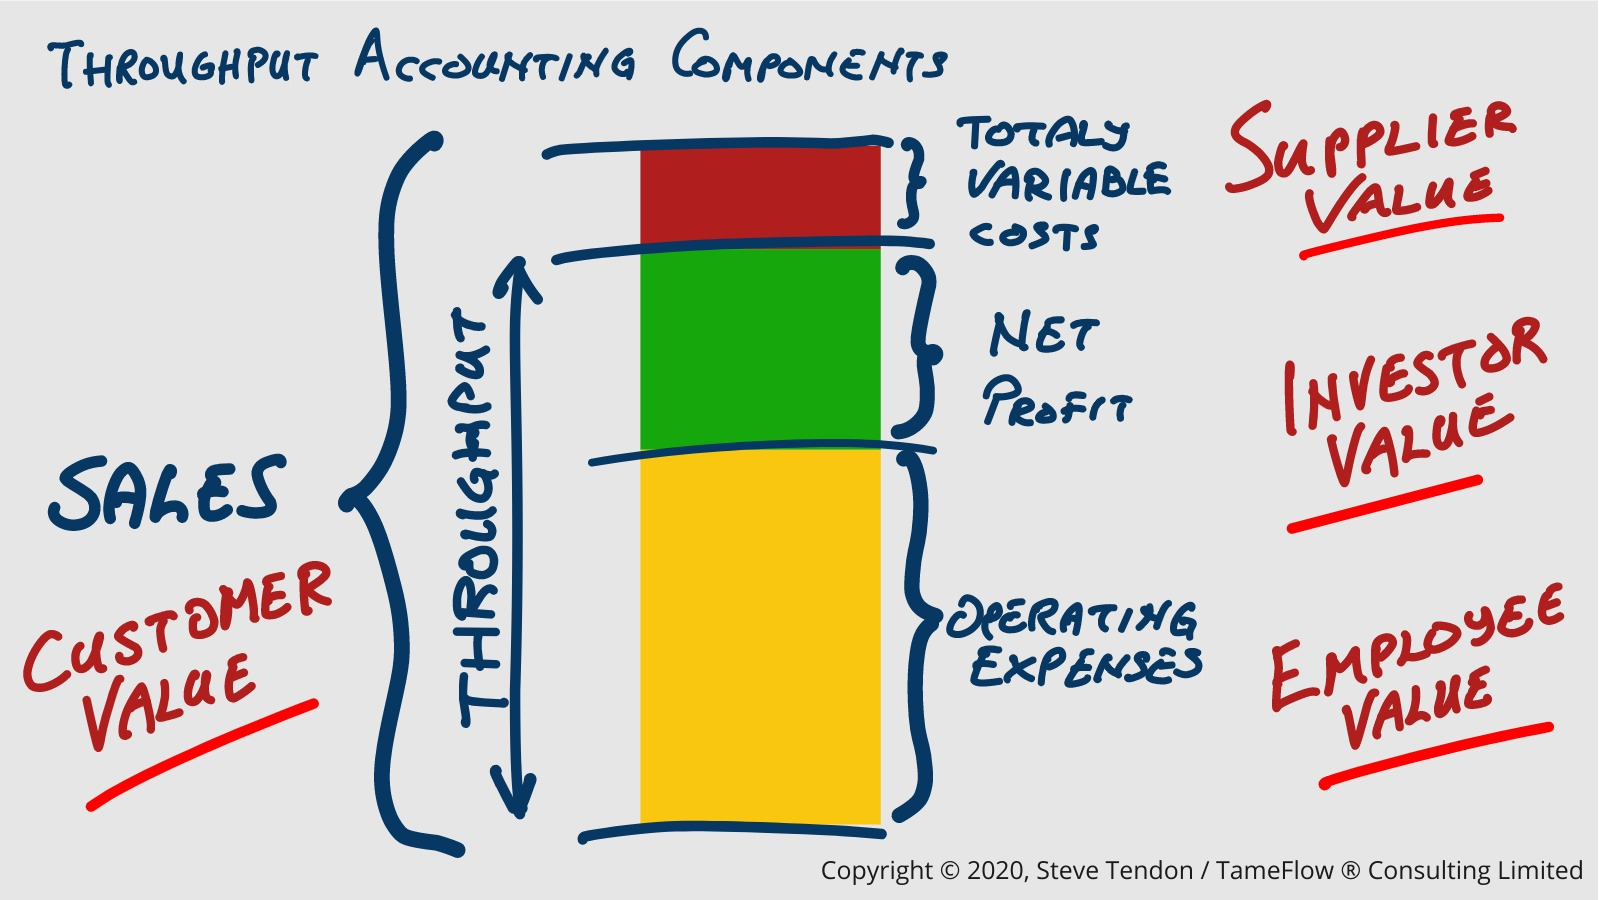 Throughput Accounting Components